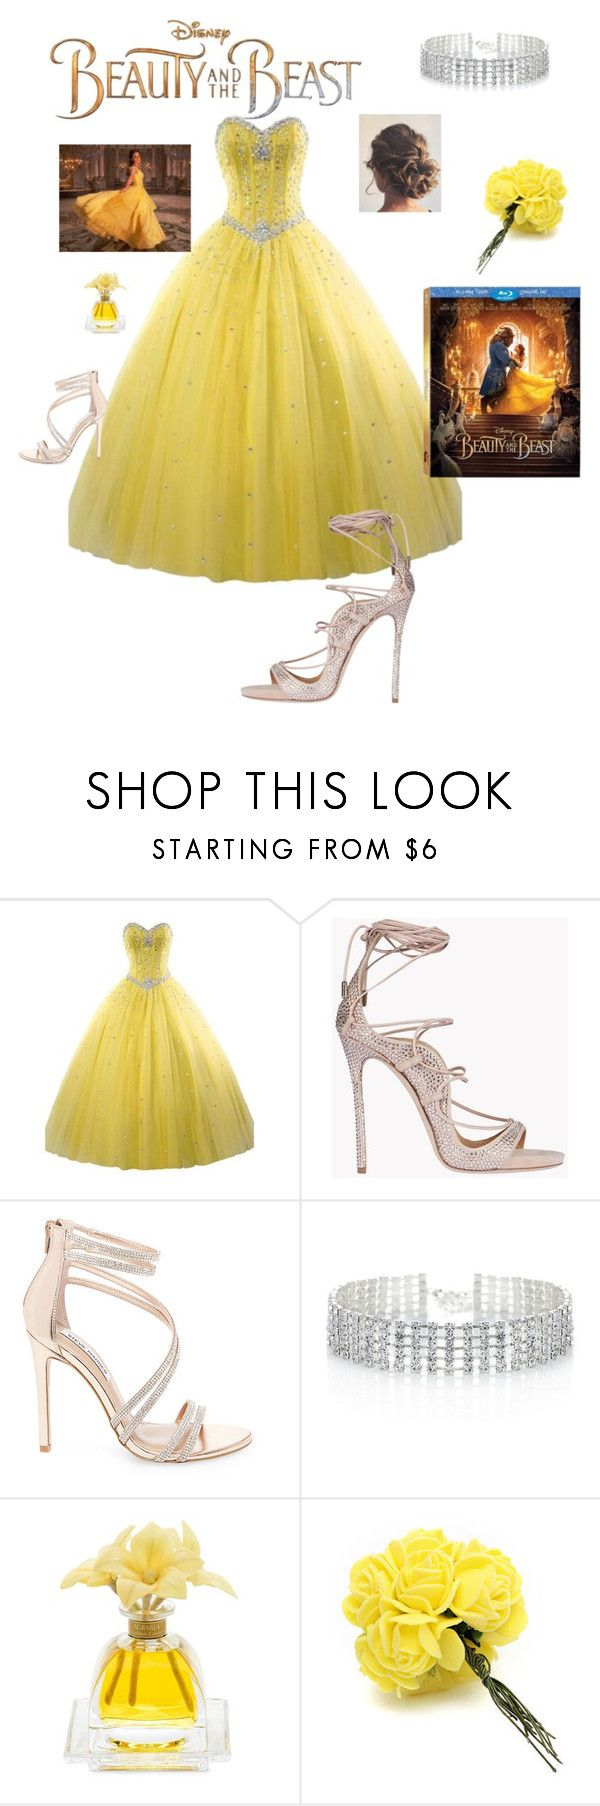 """Untitled #1"" by swiftyme ❤ liked on Polyvore featuring Disney, Dsquared2, Steve Madden, Red Herring, Agraria, BeautyandtheBeast and contestentry"